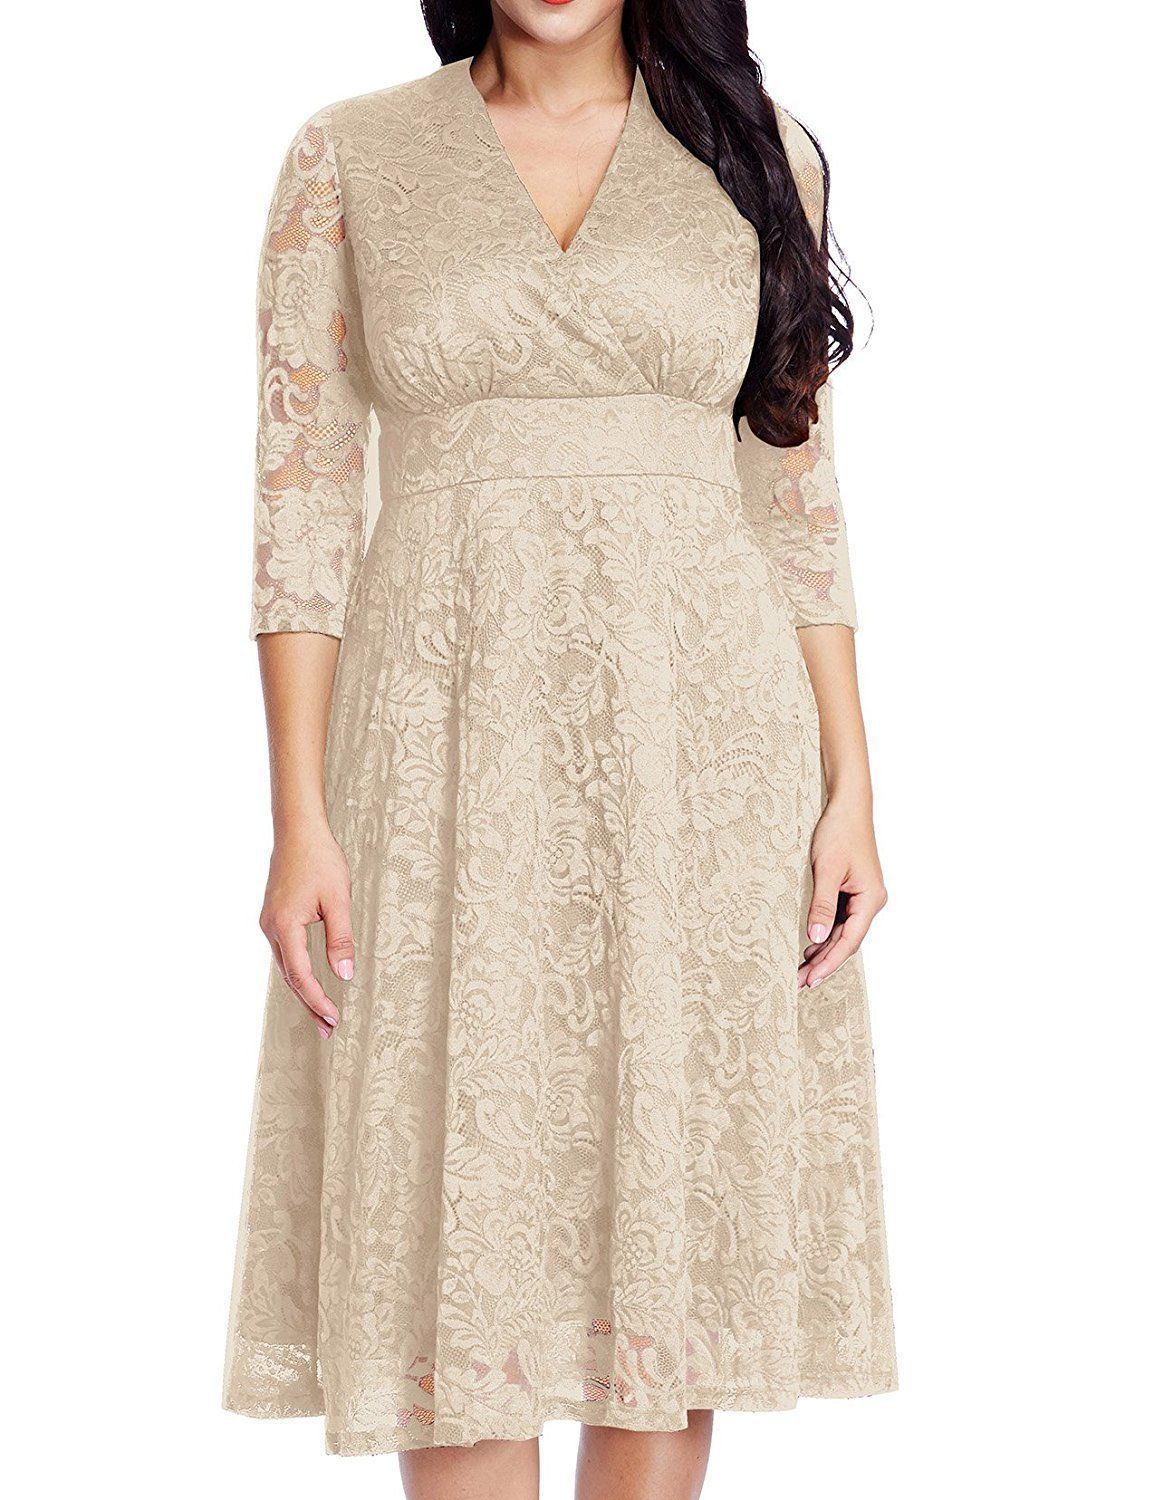 Egyptian wedding dresses  Nice Amazing Womenus Lace Plus Size Mother of the Bride Skater Dress